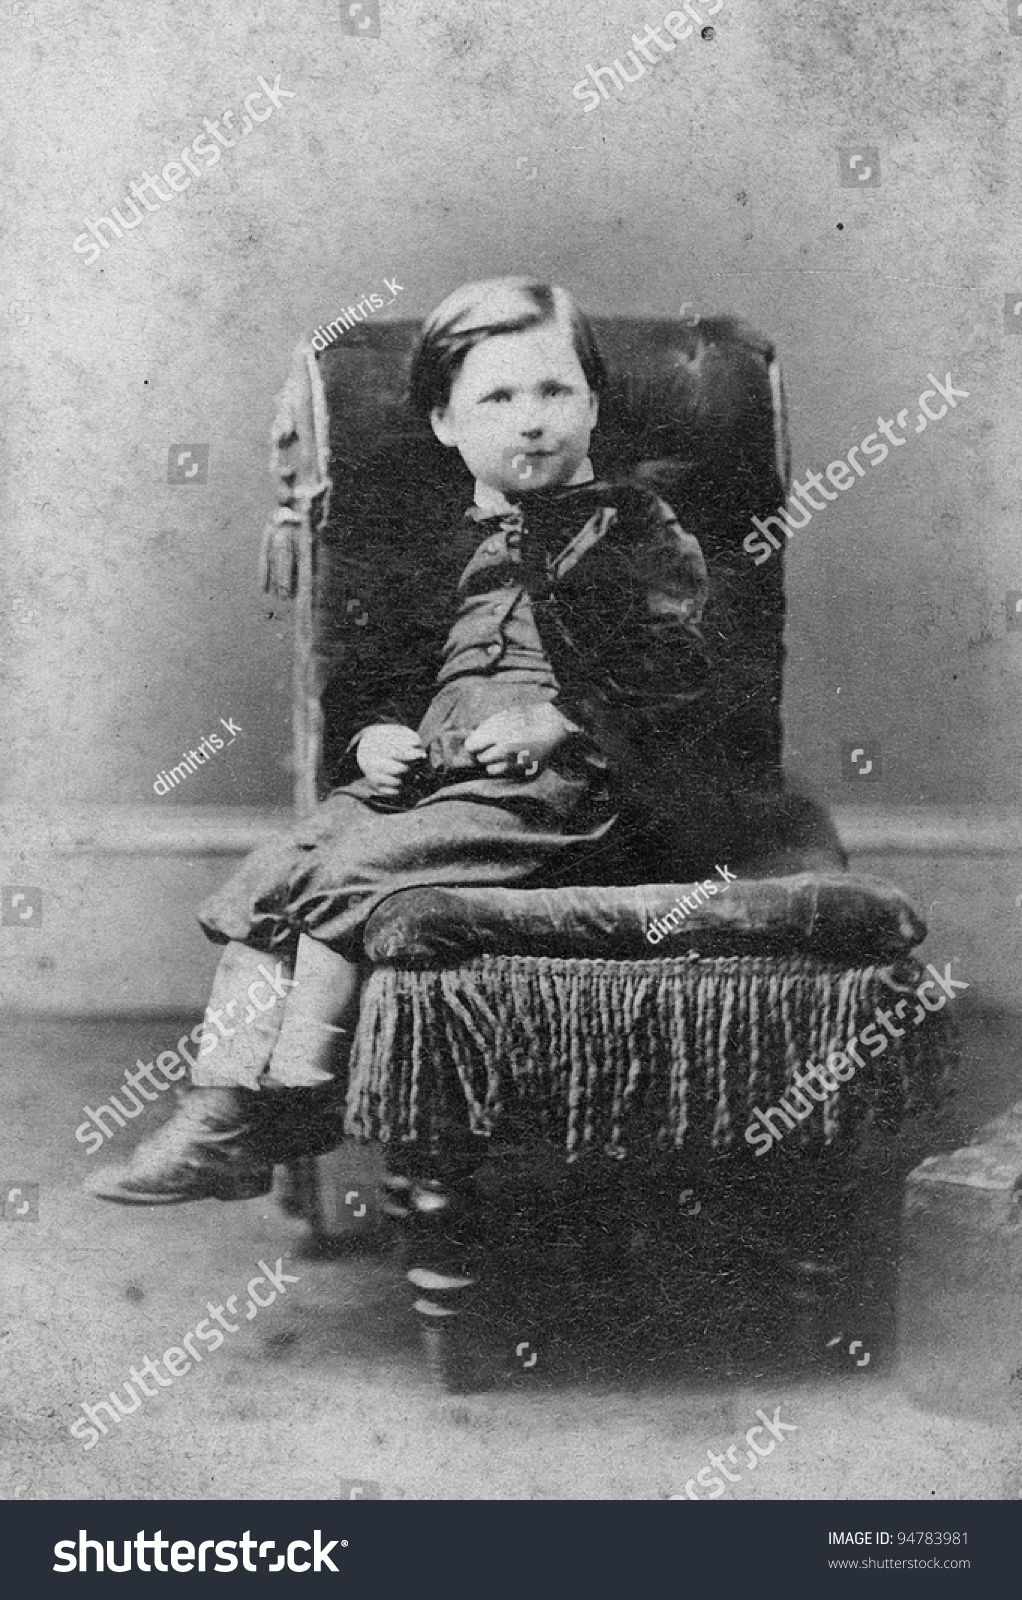 Black child sitting in chair - Portrait Of Boy On Chair Black And White Sourced From Antique Cabinet Card Vintage